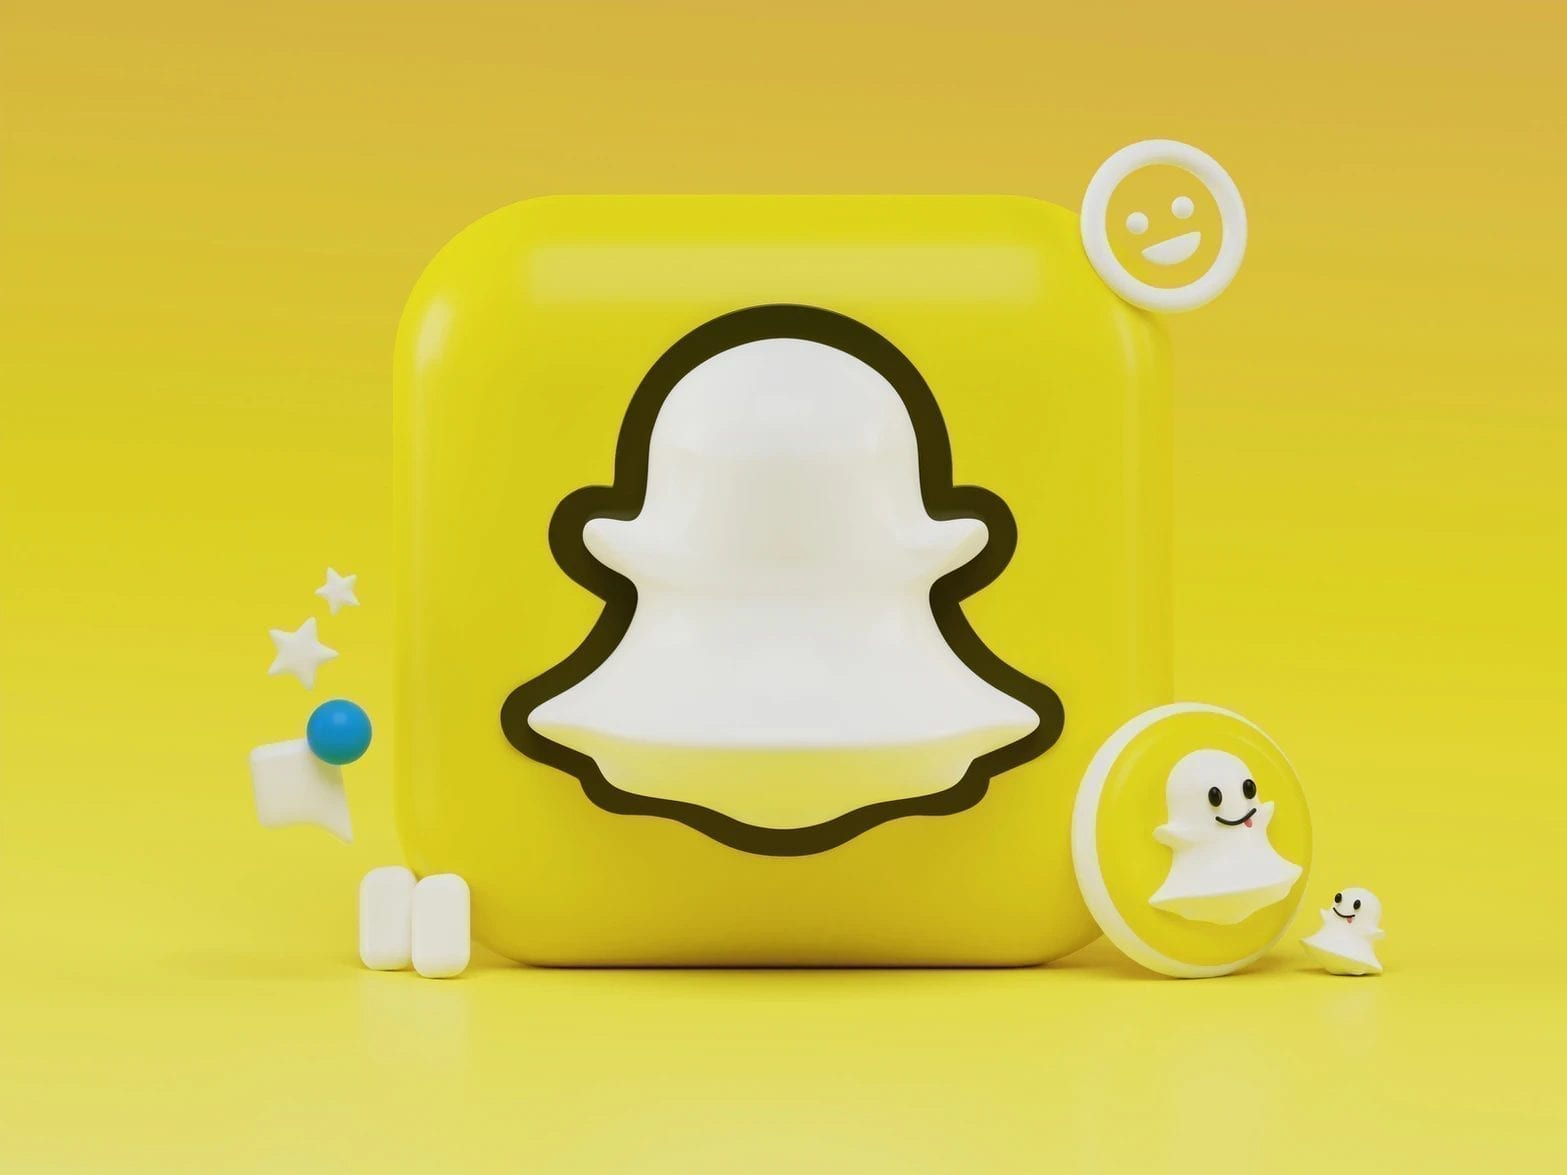 2021 Guide on How To Cancel Anything On Snapchat